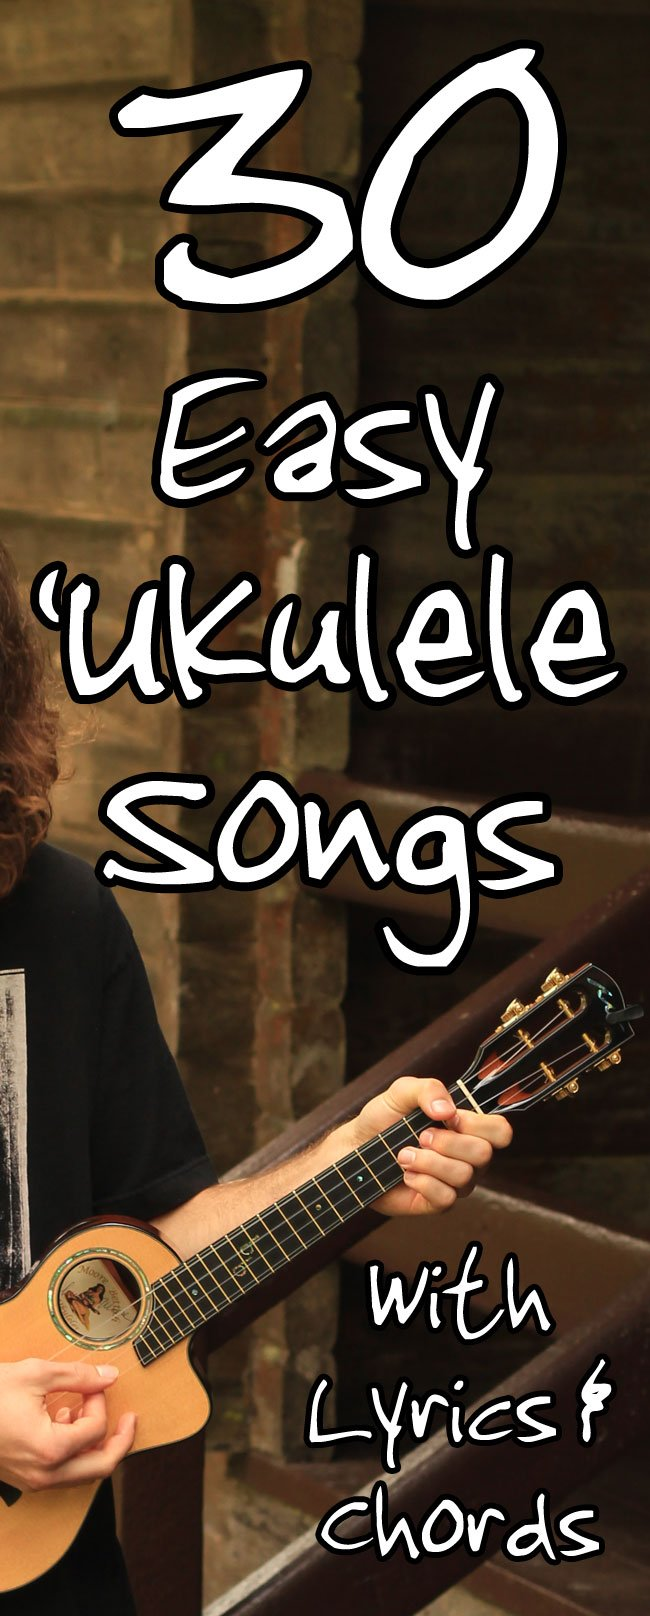 Easy ukulele songs 30 simple song sheets for beginners live easy ukulele songs hexwebz Gallery